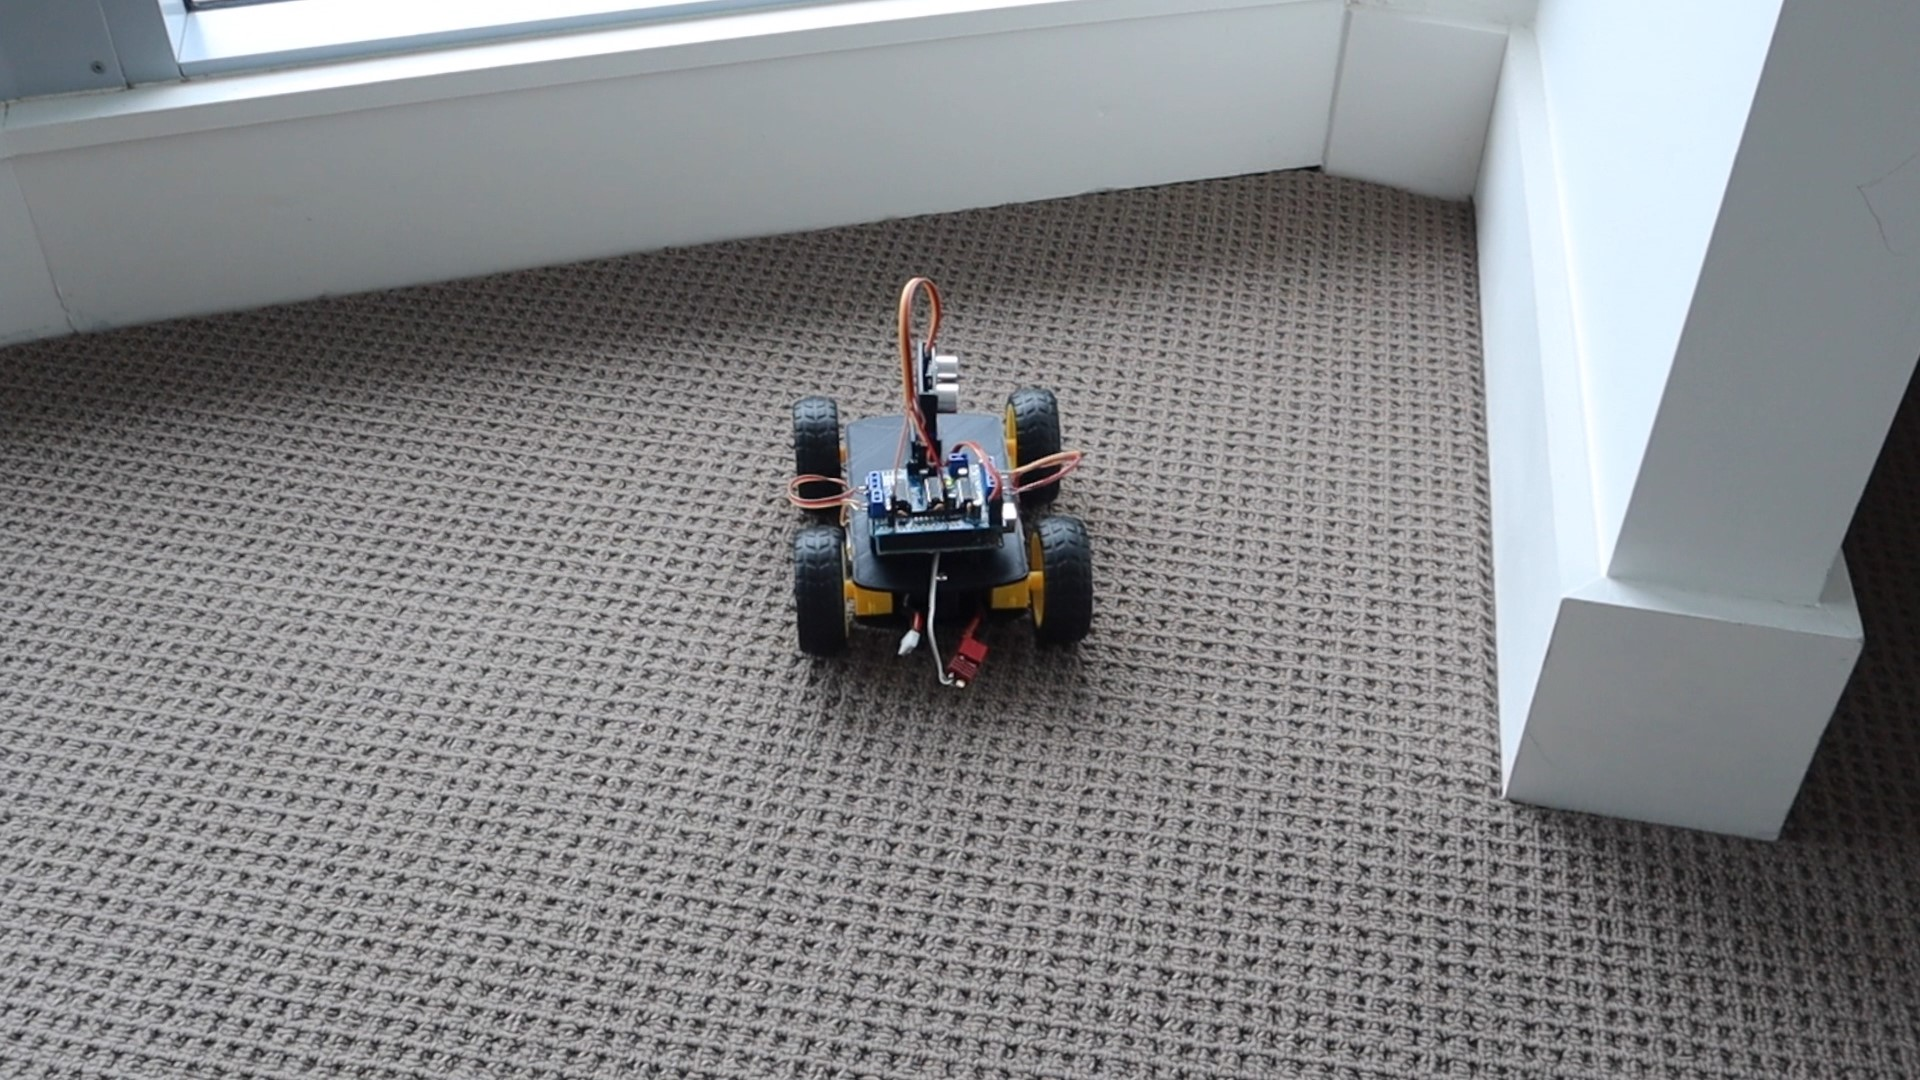 Test The Obstacle Avoiding Robot Car